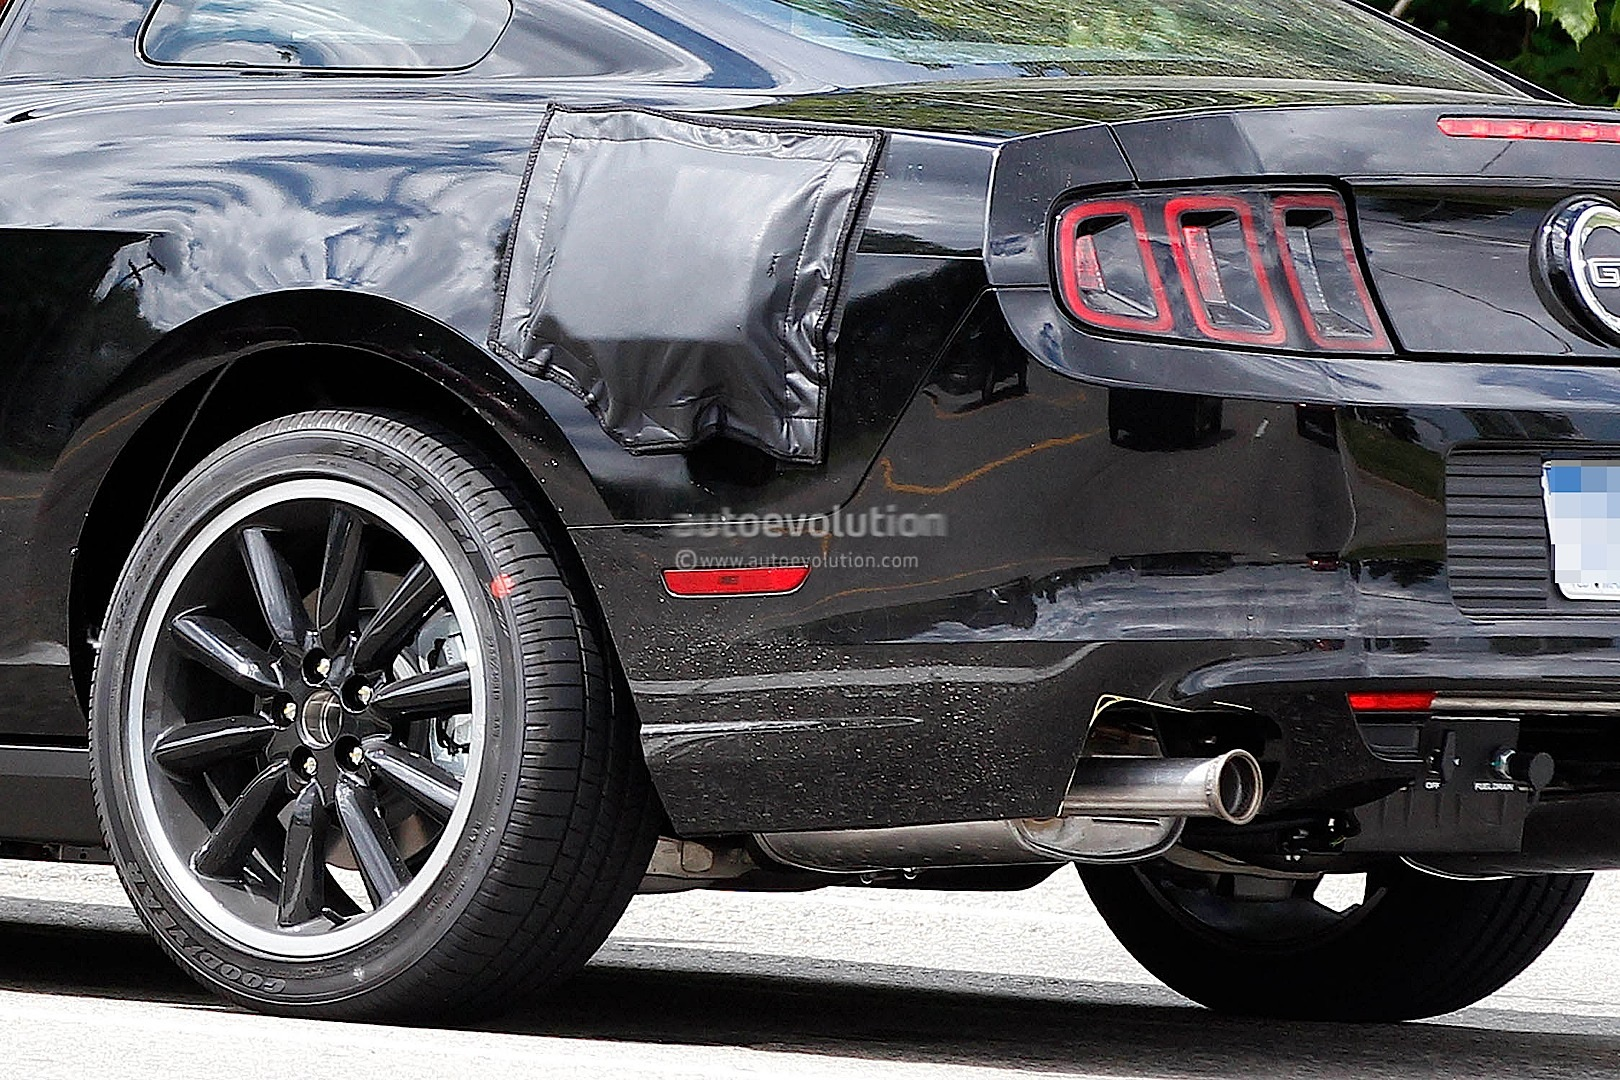 2015 Ford Mustang Test Mule Spy Shots #2/6